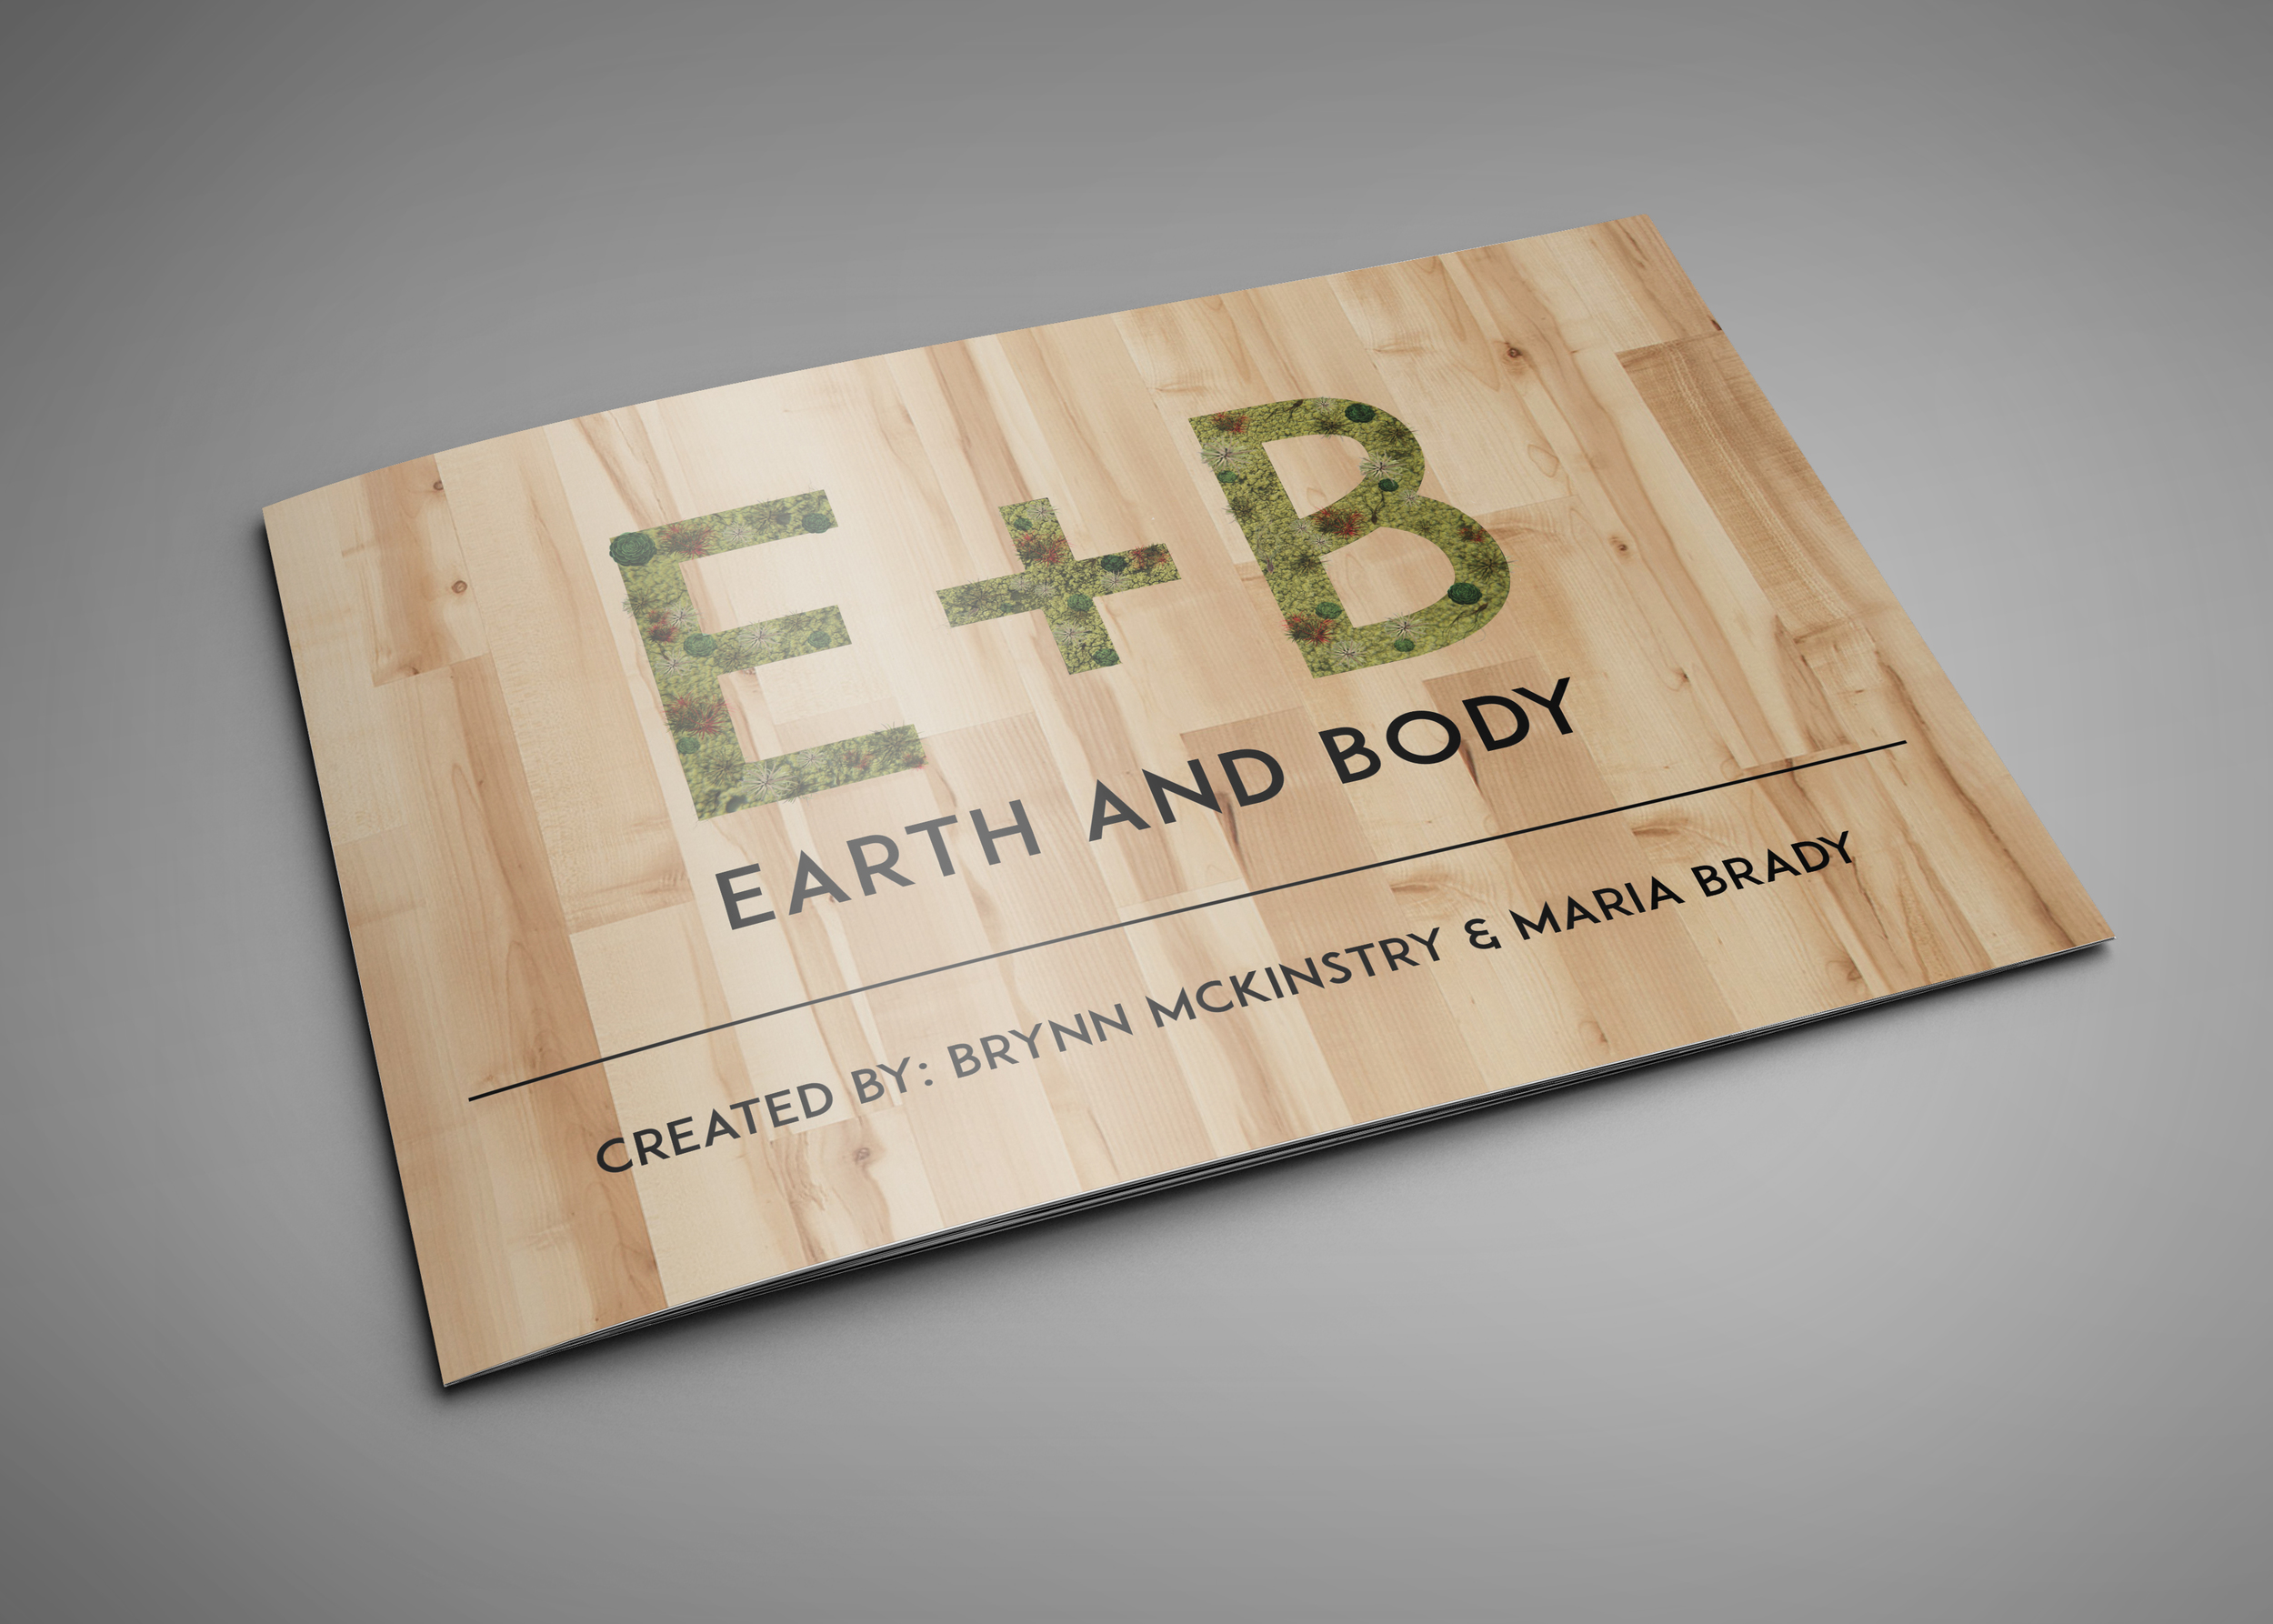 Earth + Body is a mock store located in Malibu, California created for the class Visual Communication in Fashion at the Savannah College of Art and Design. E+B is an organic lifestyle brand that strives to bring its customers together with the raw elements of the Earth. Maria Brady is a co-owner of this project.